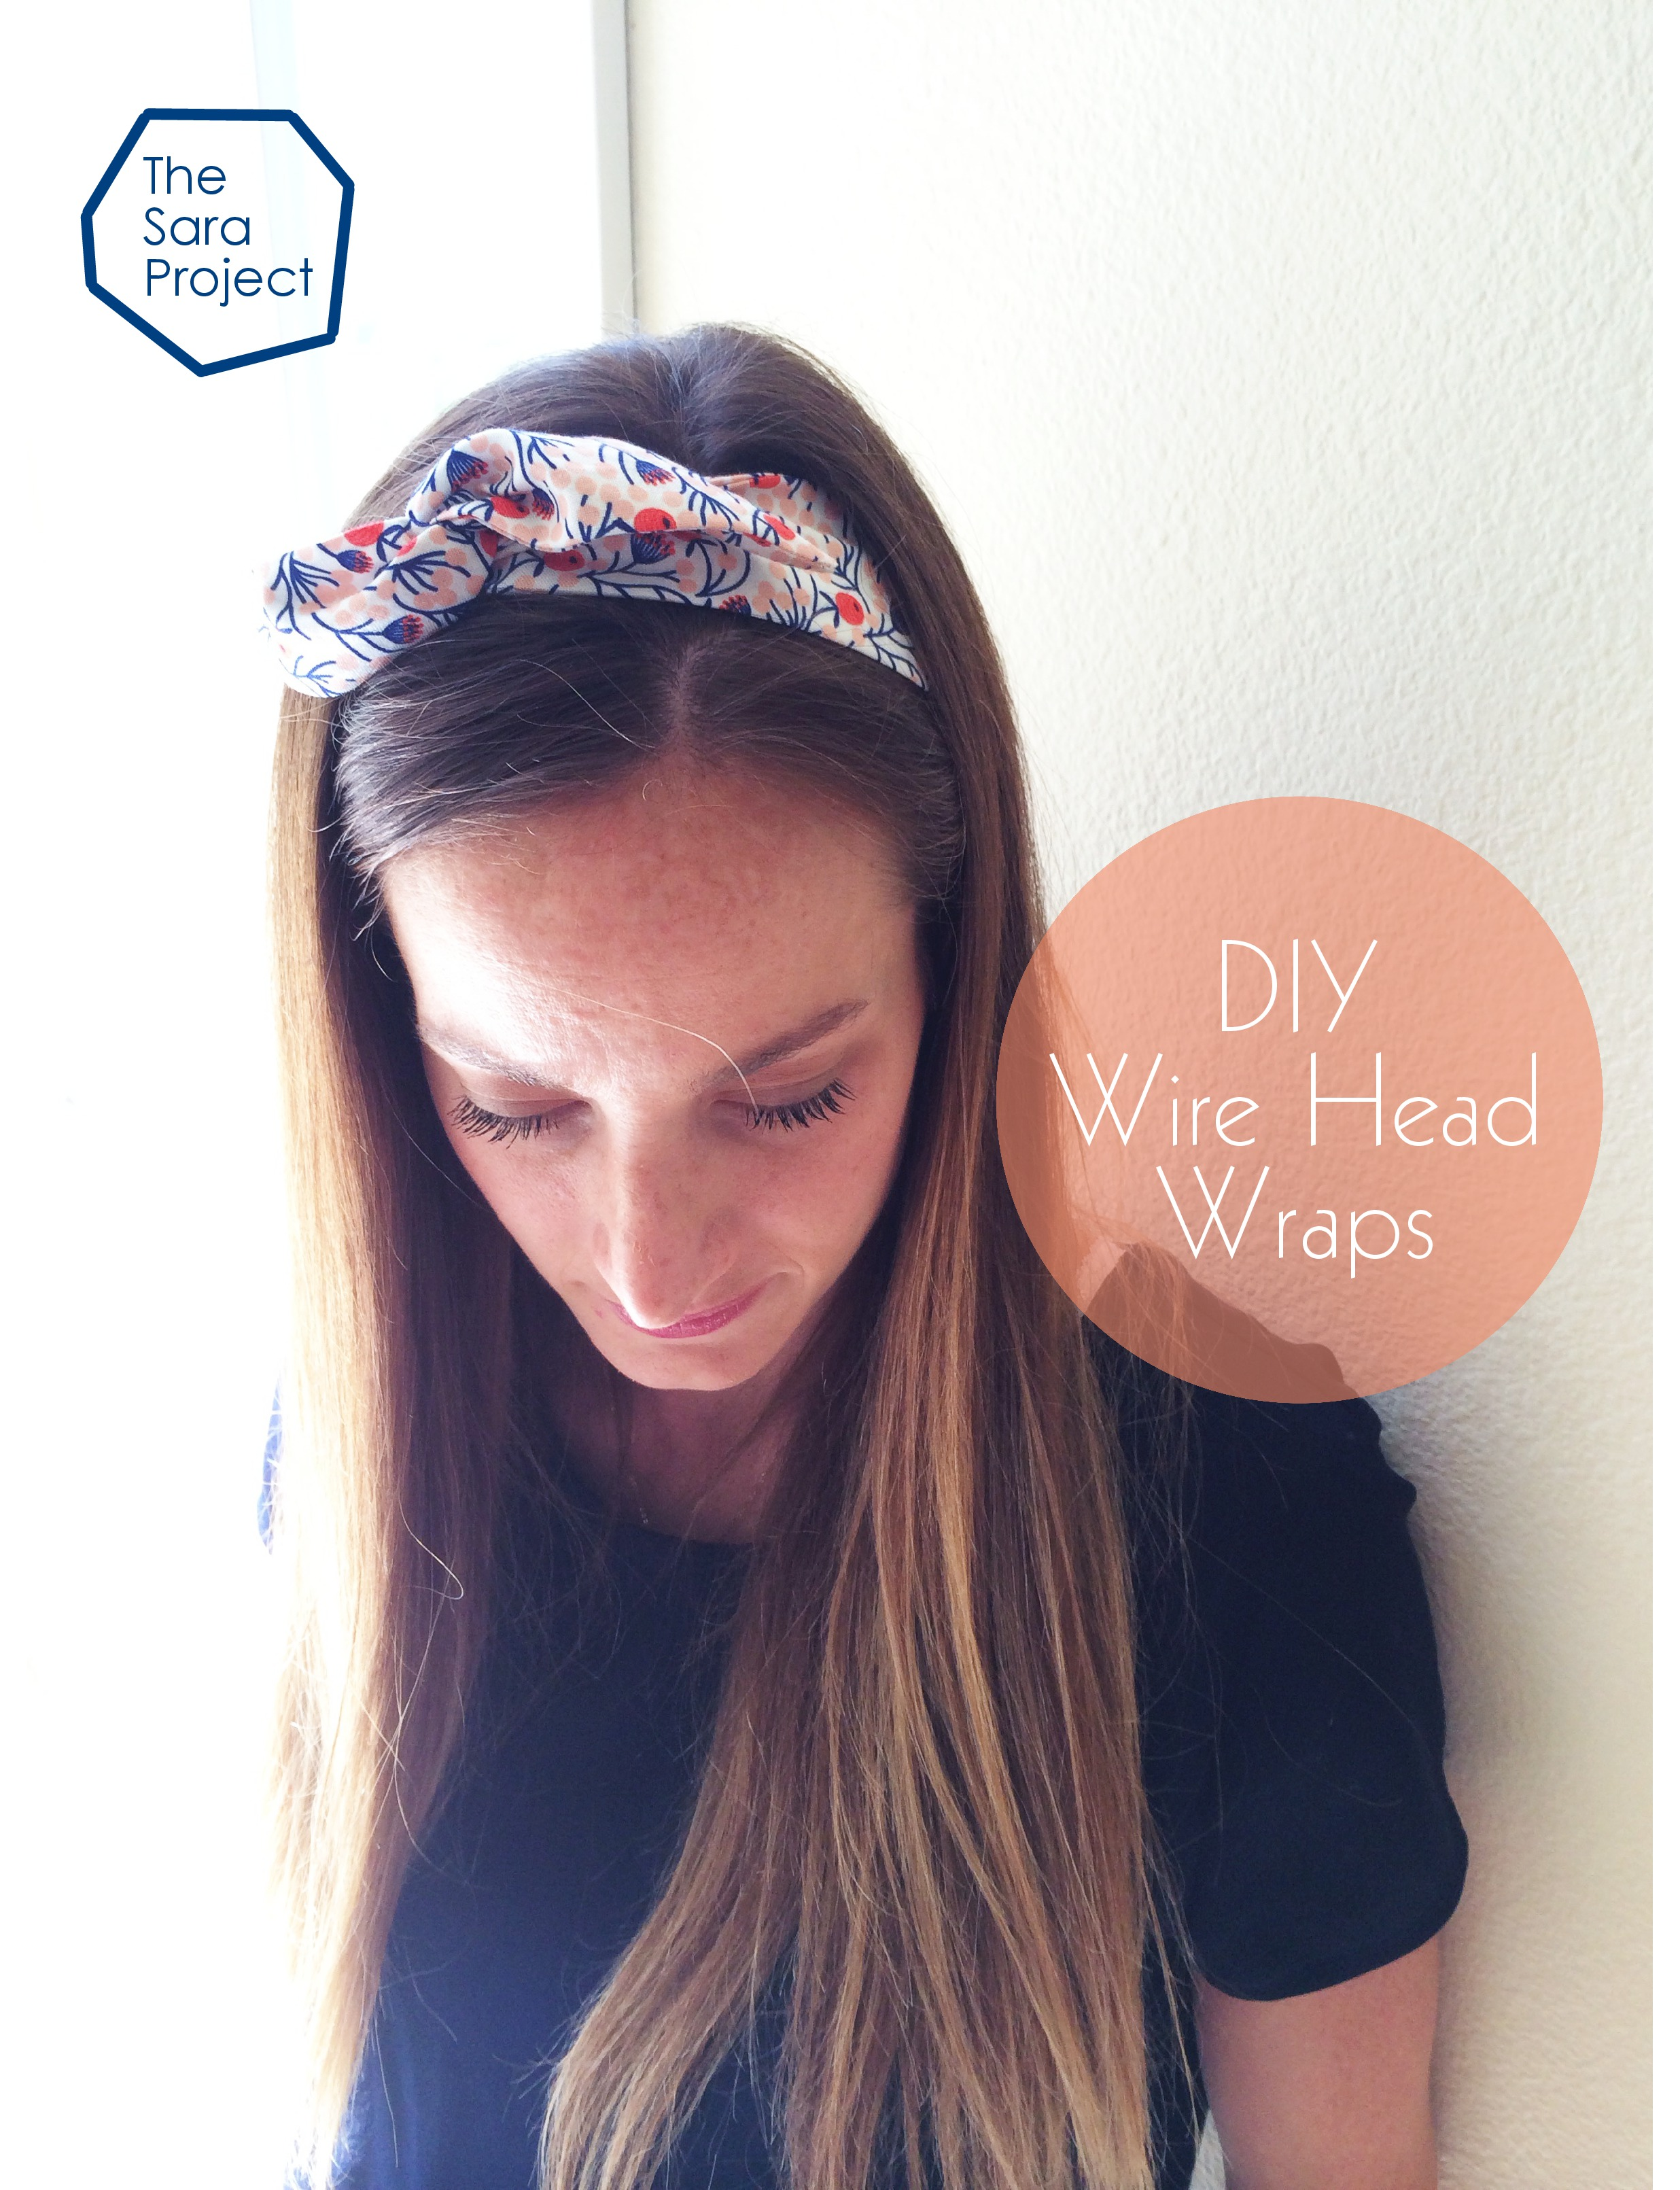 diywireheadwraps-page-0